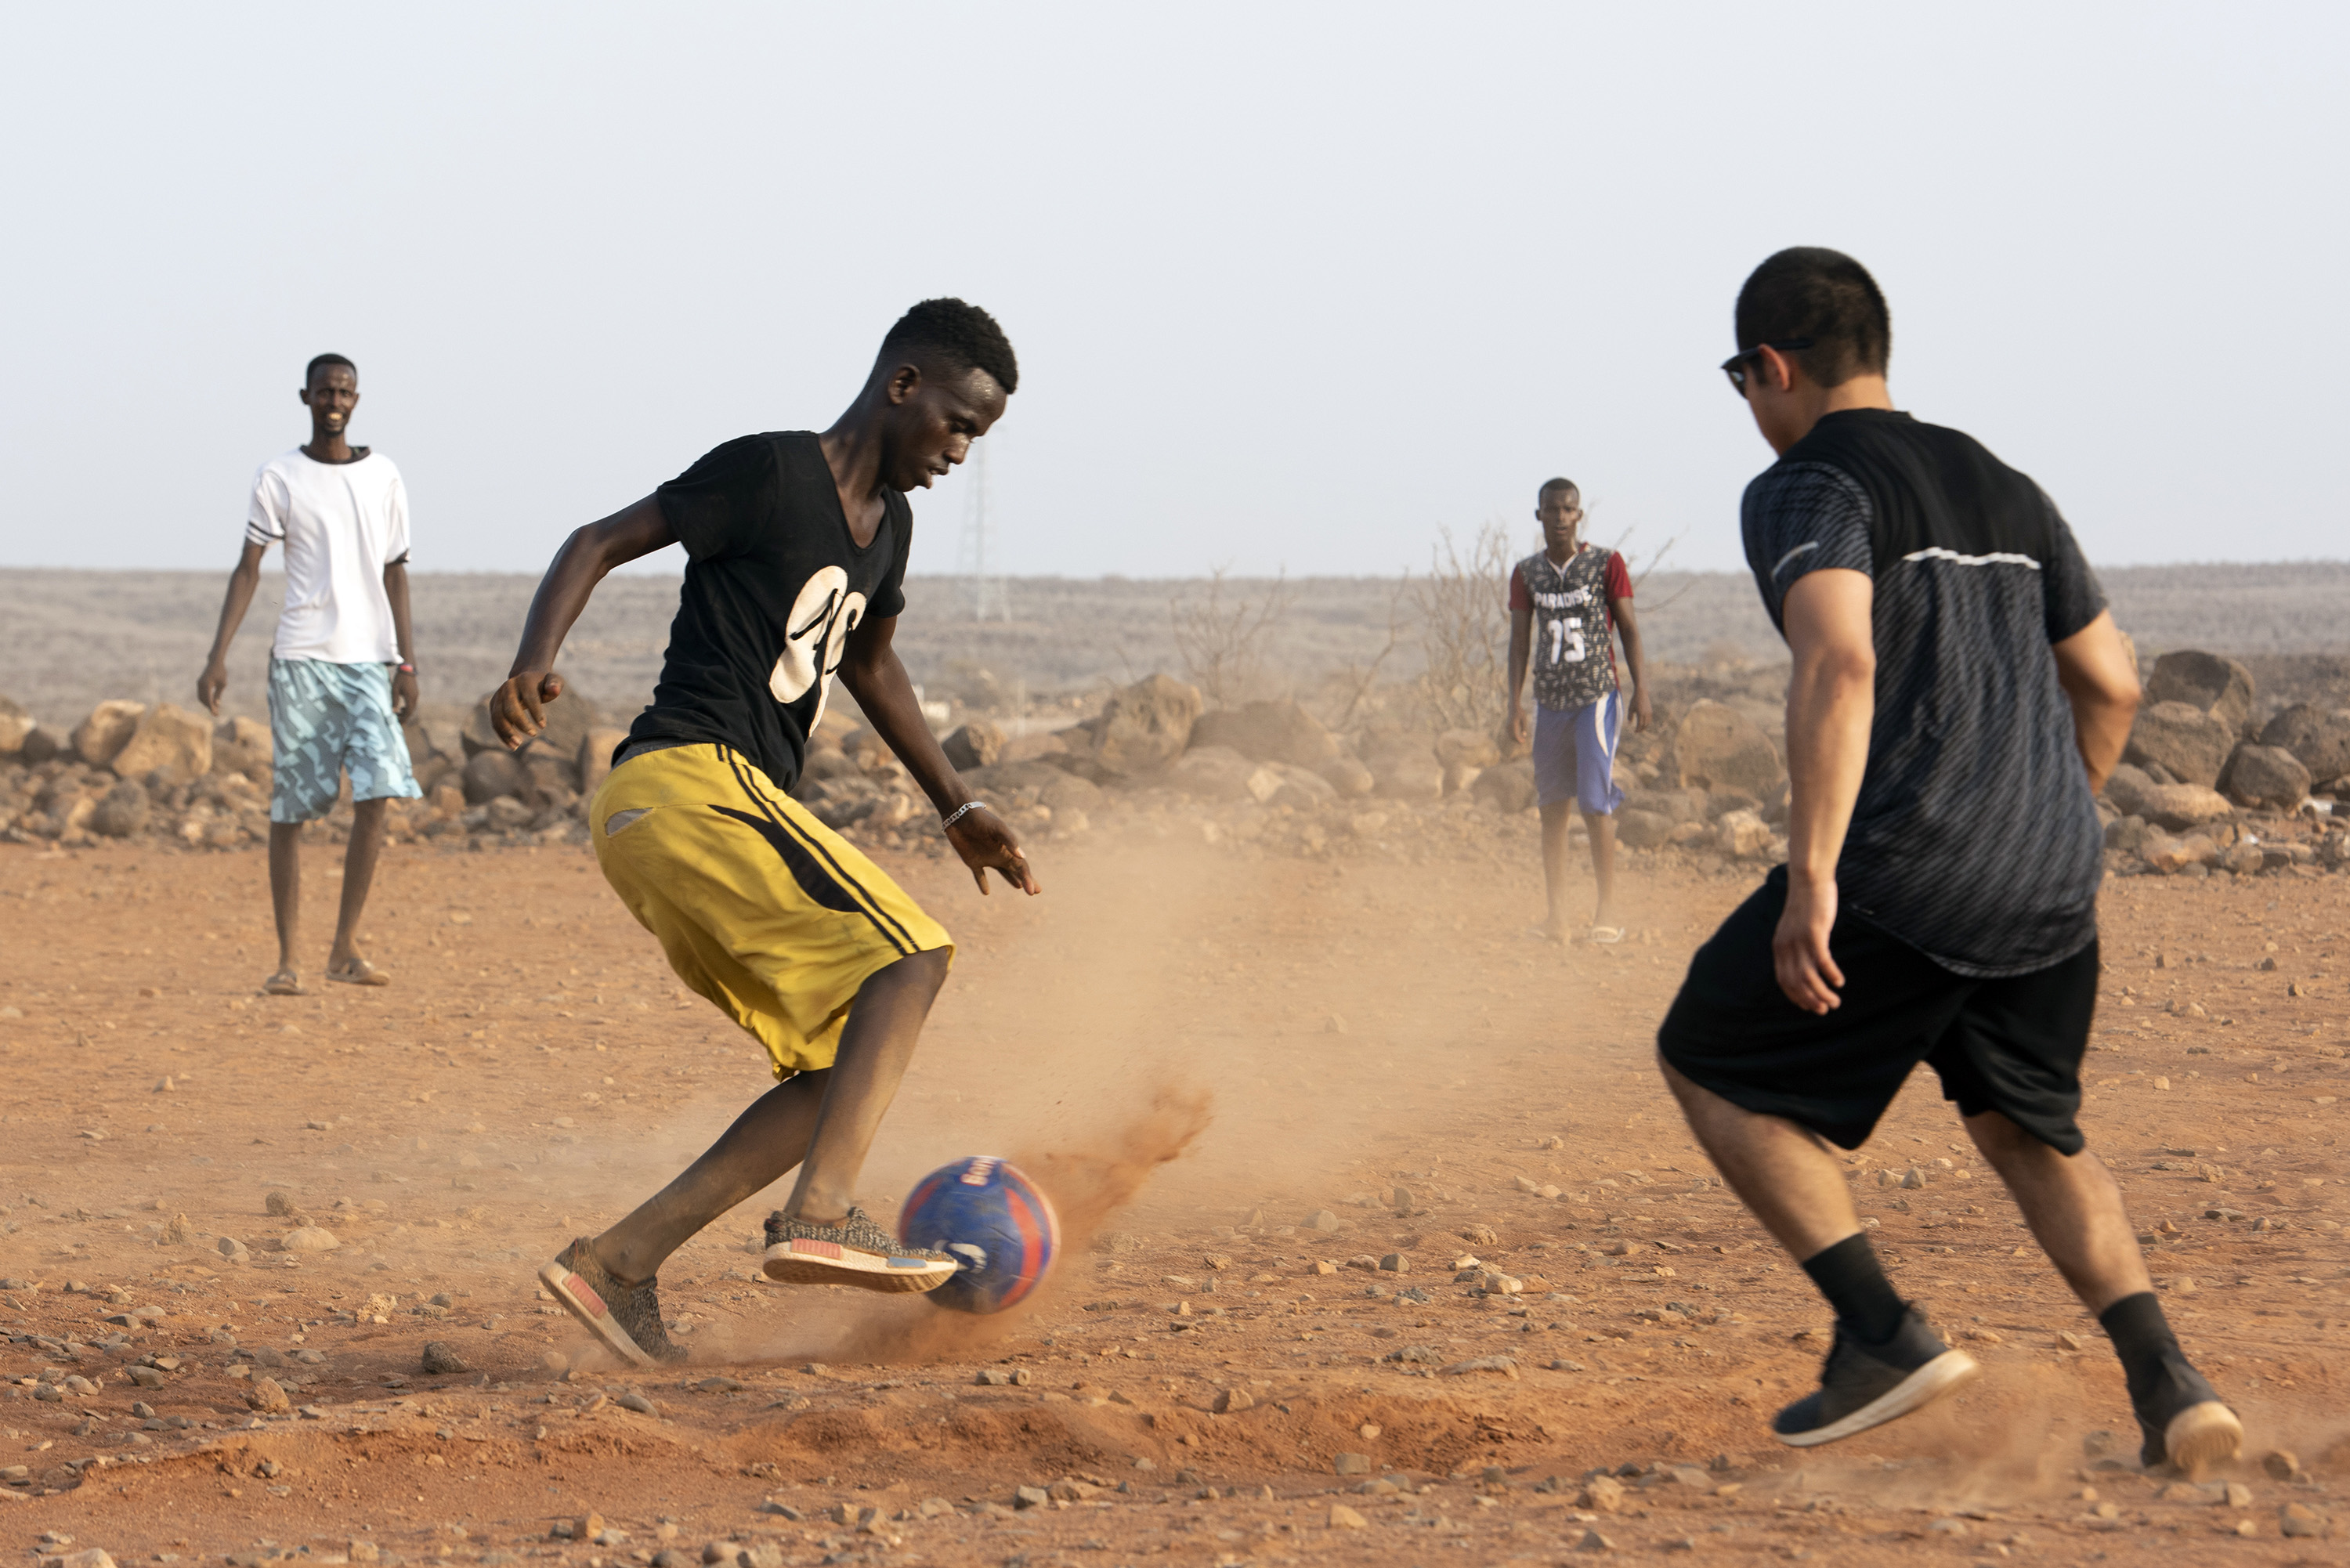 U.S. Service members assigned to Combined Joint Task Force - Horn of Africa participate in a friendly game of soccer with children from the nearby village, outside of Chebelley village, Djibouti, Aug. 3, 2018. Over 30 Soldiers and Airmen volunteered for the outreach event organized by the 404th Civil Affairs Battalion. (U.S. Air National Guard photo by Master Sgt. Sarah Mattison)